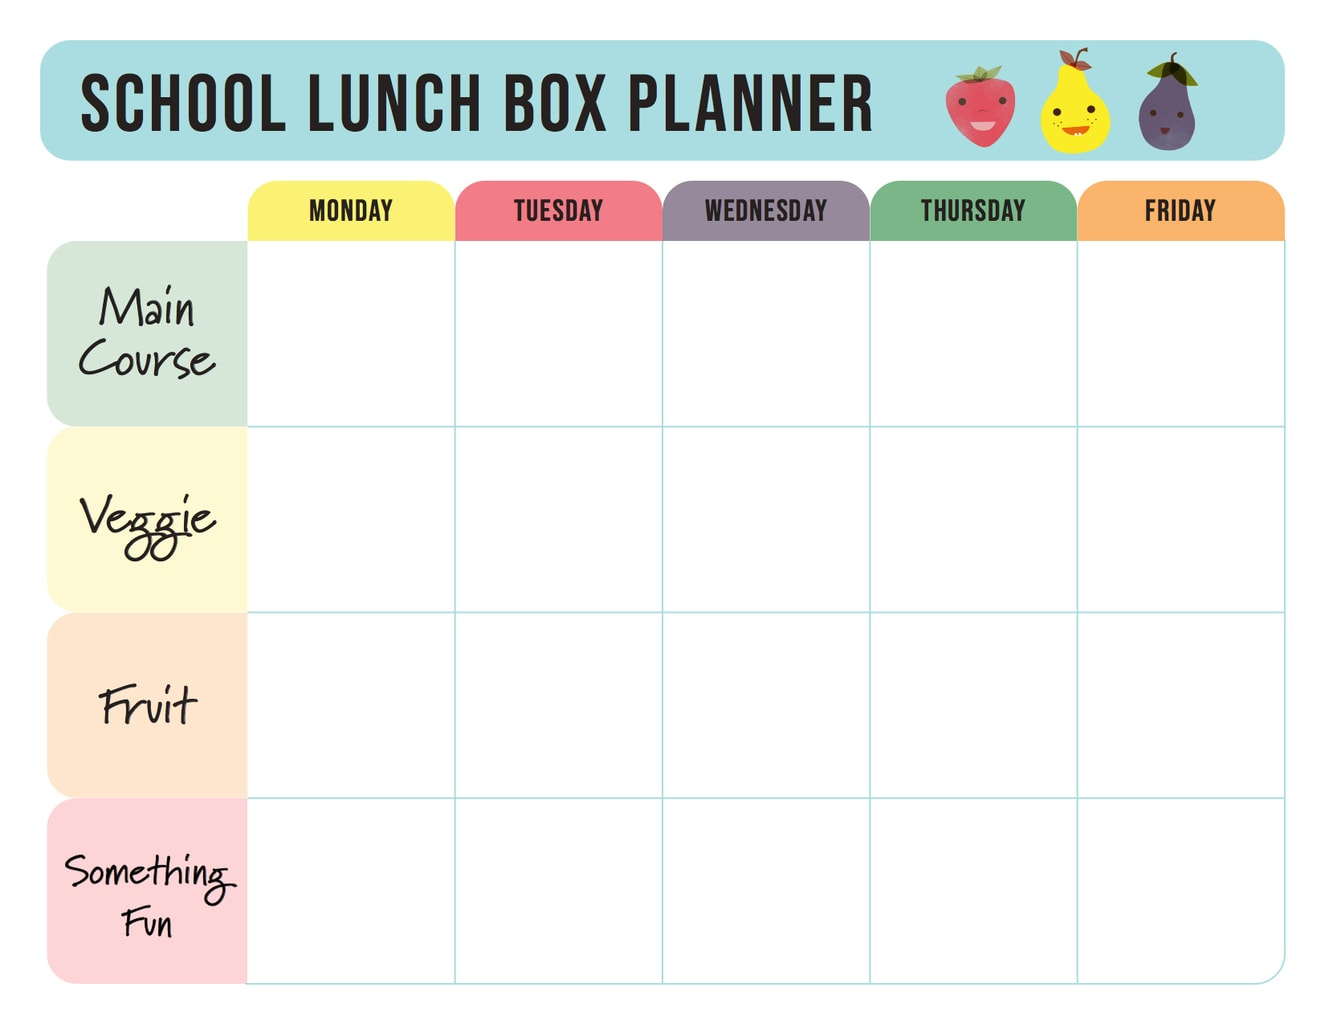 School Lunch Box Planner with categories on the left with main course, veggie, fruit and something fun. Along the top there are the days of the school week - Monday, Tuesday, Wednesday, Thursday and Friday.